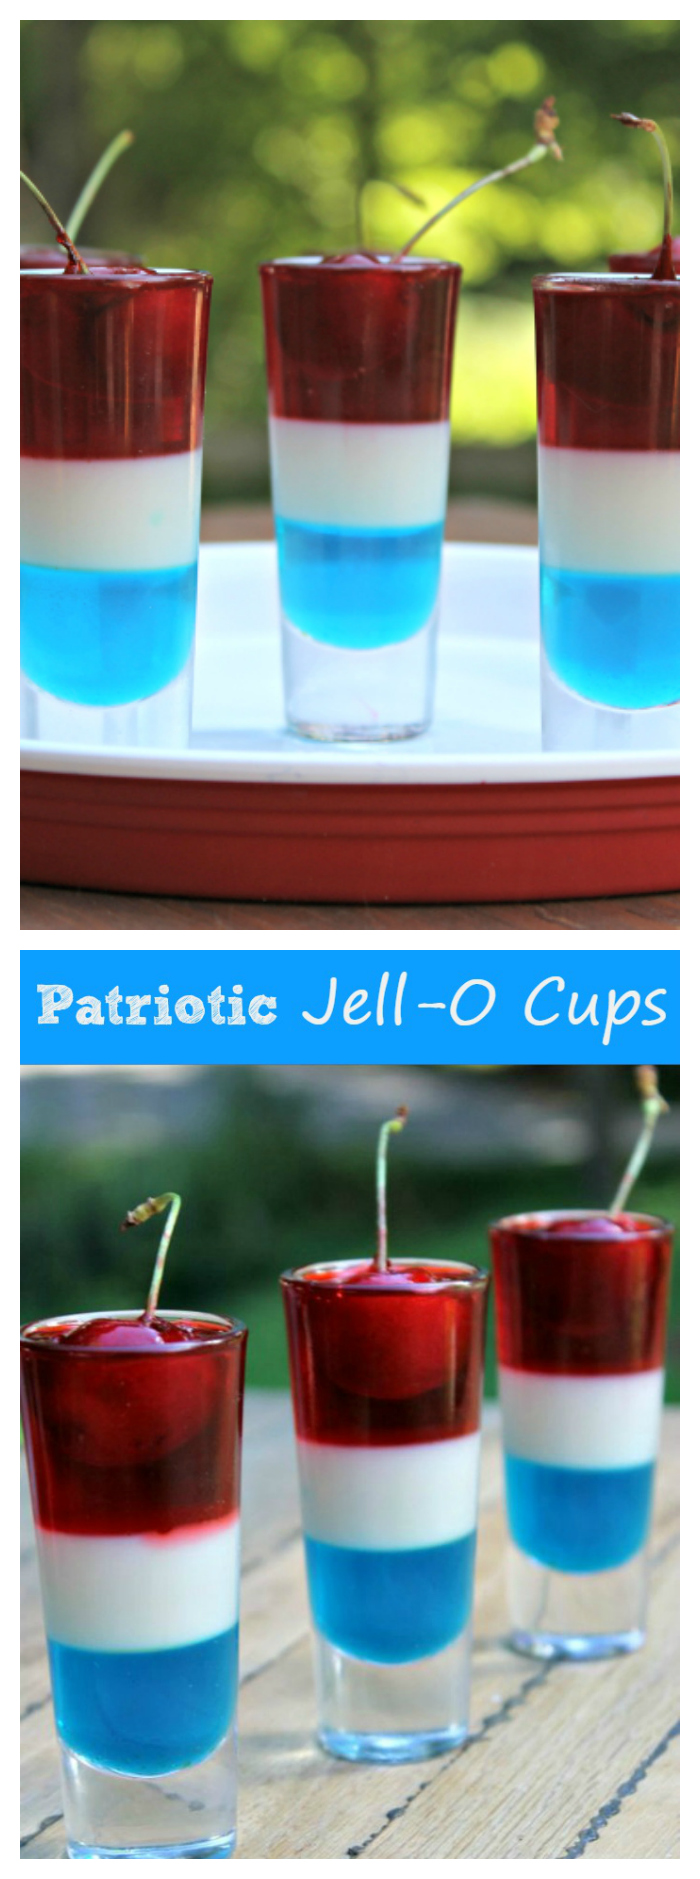 If you are looking for a fun and festive treat that shows your love of your country, these Patriotic Jello Cups are perfect!